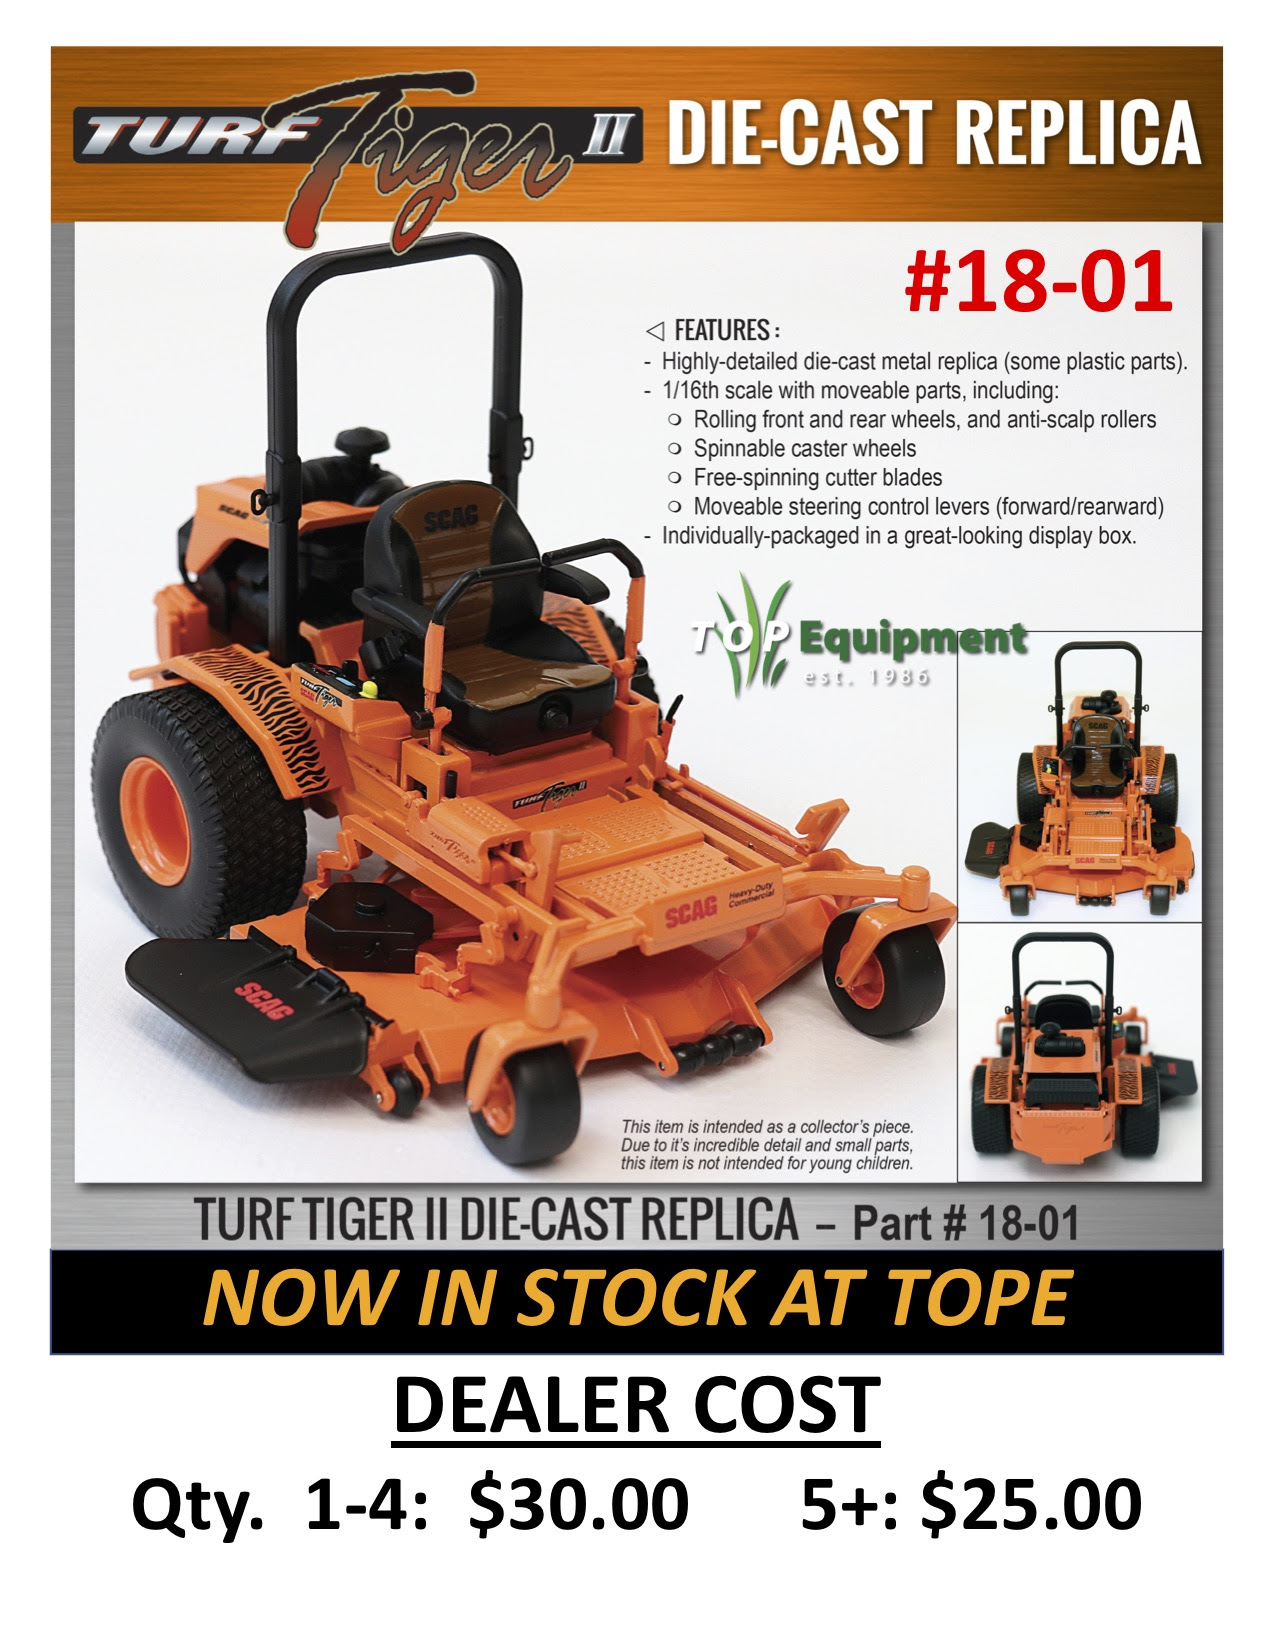 SCAG Die-Cast Mowers are NOW AVAILABLE! — TOP Equipment